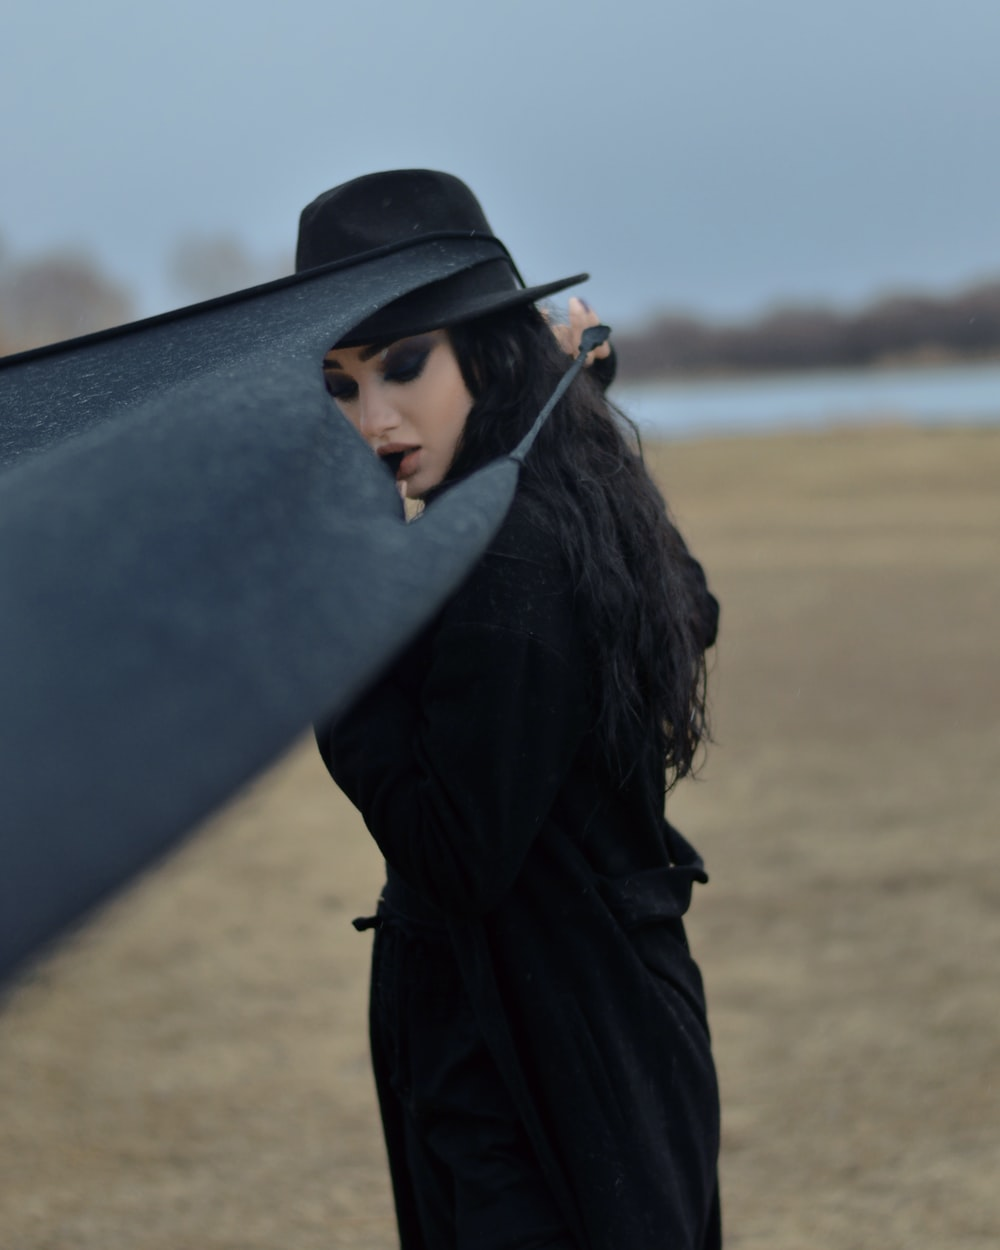 woman in black coat and black hat standing on brown field during daytime